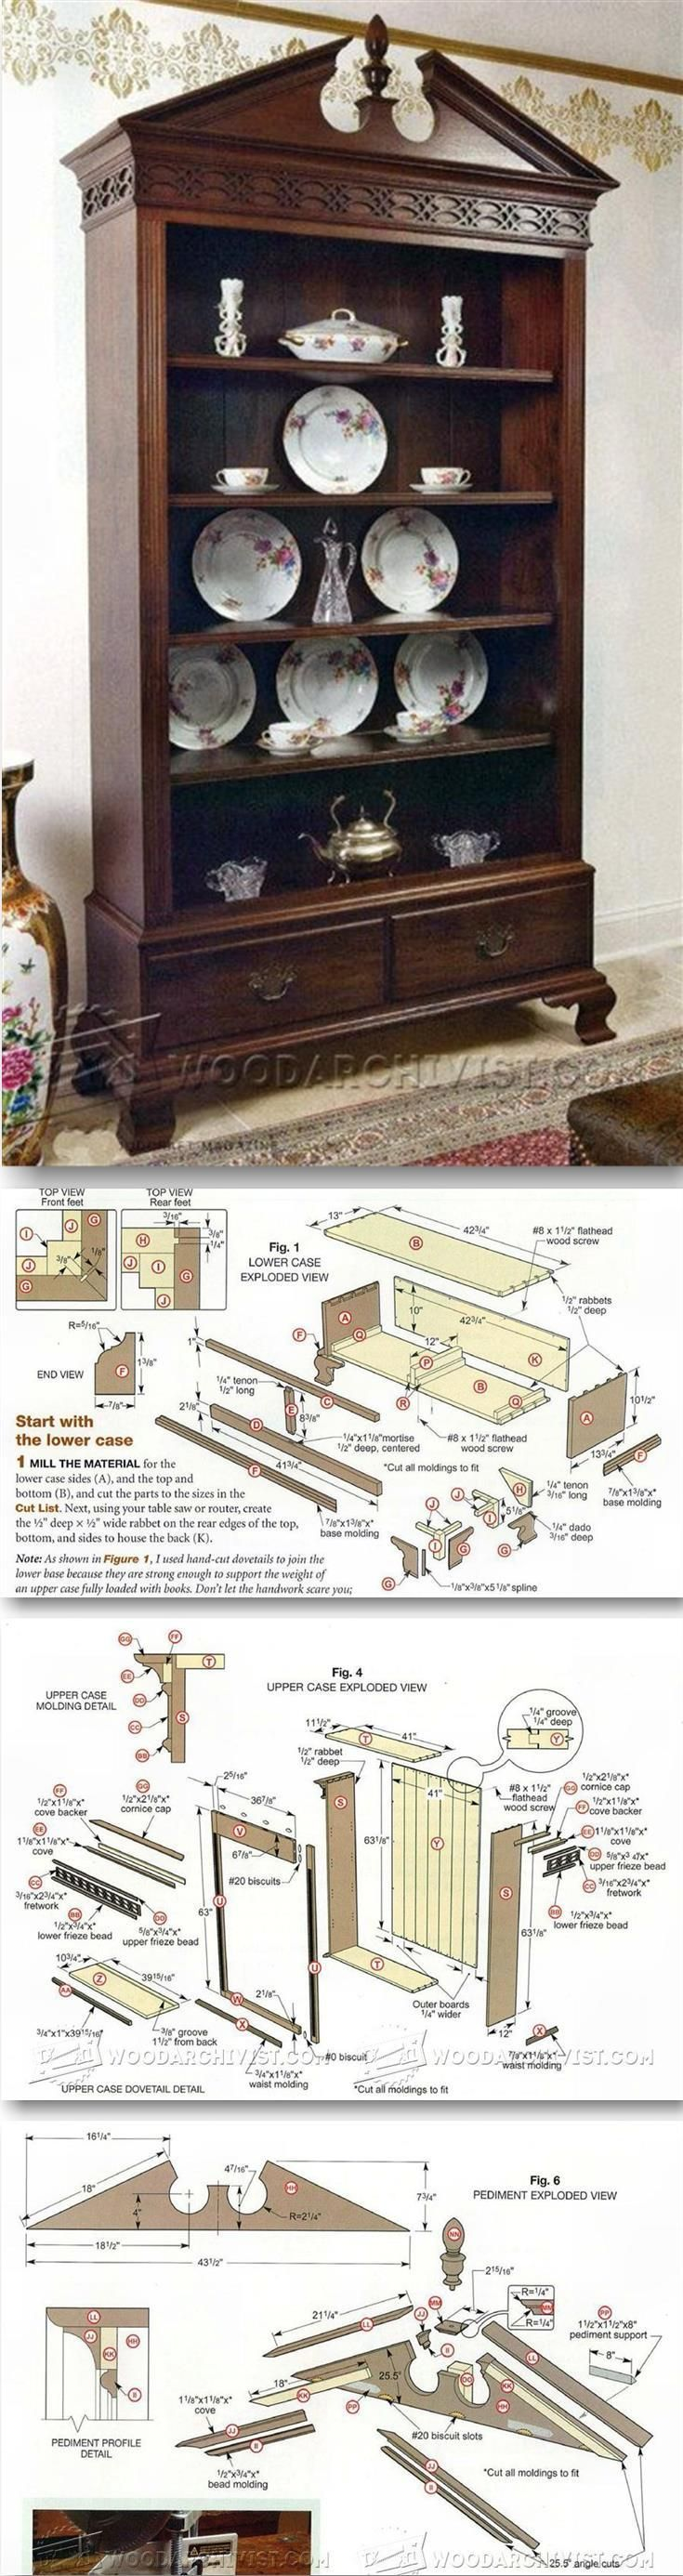 Classiс Display Case Plans - Woodworking Plans and Projects | WoodArchivist.com